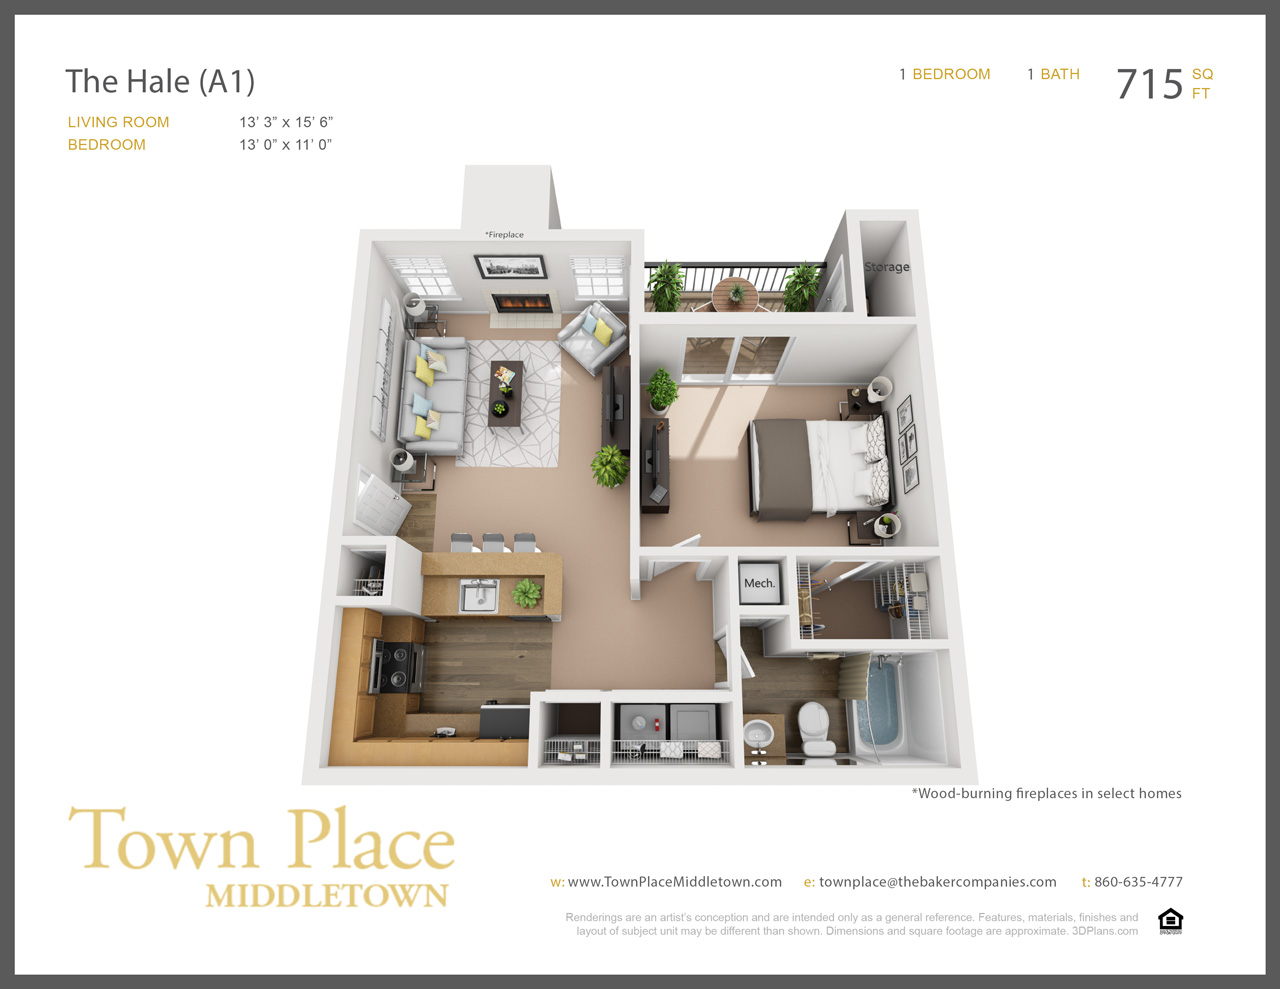 Town-Place-Middletown_The-Hale.jpg